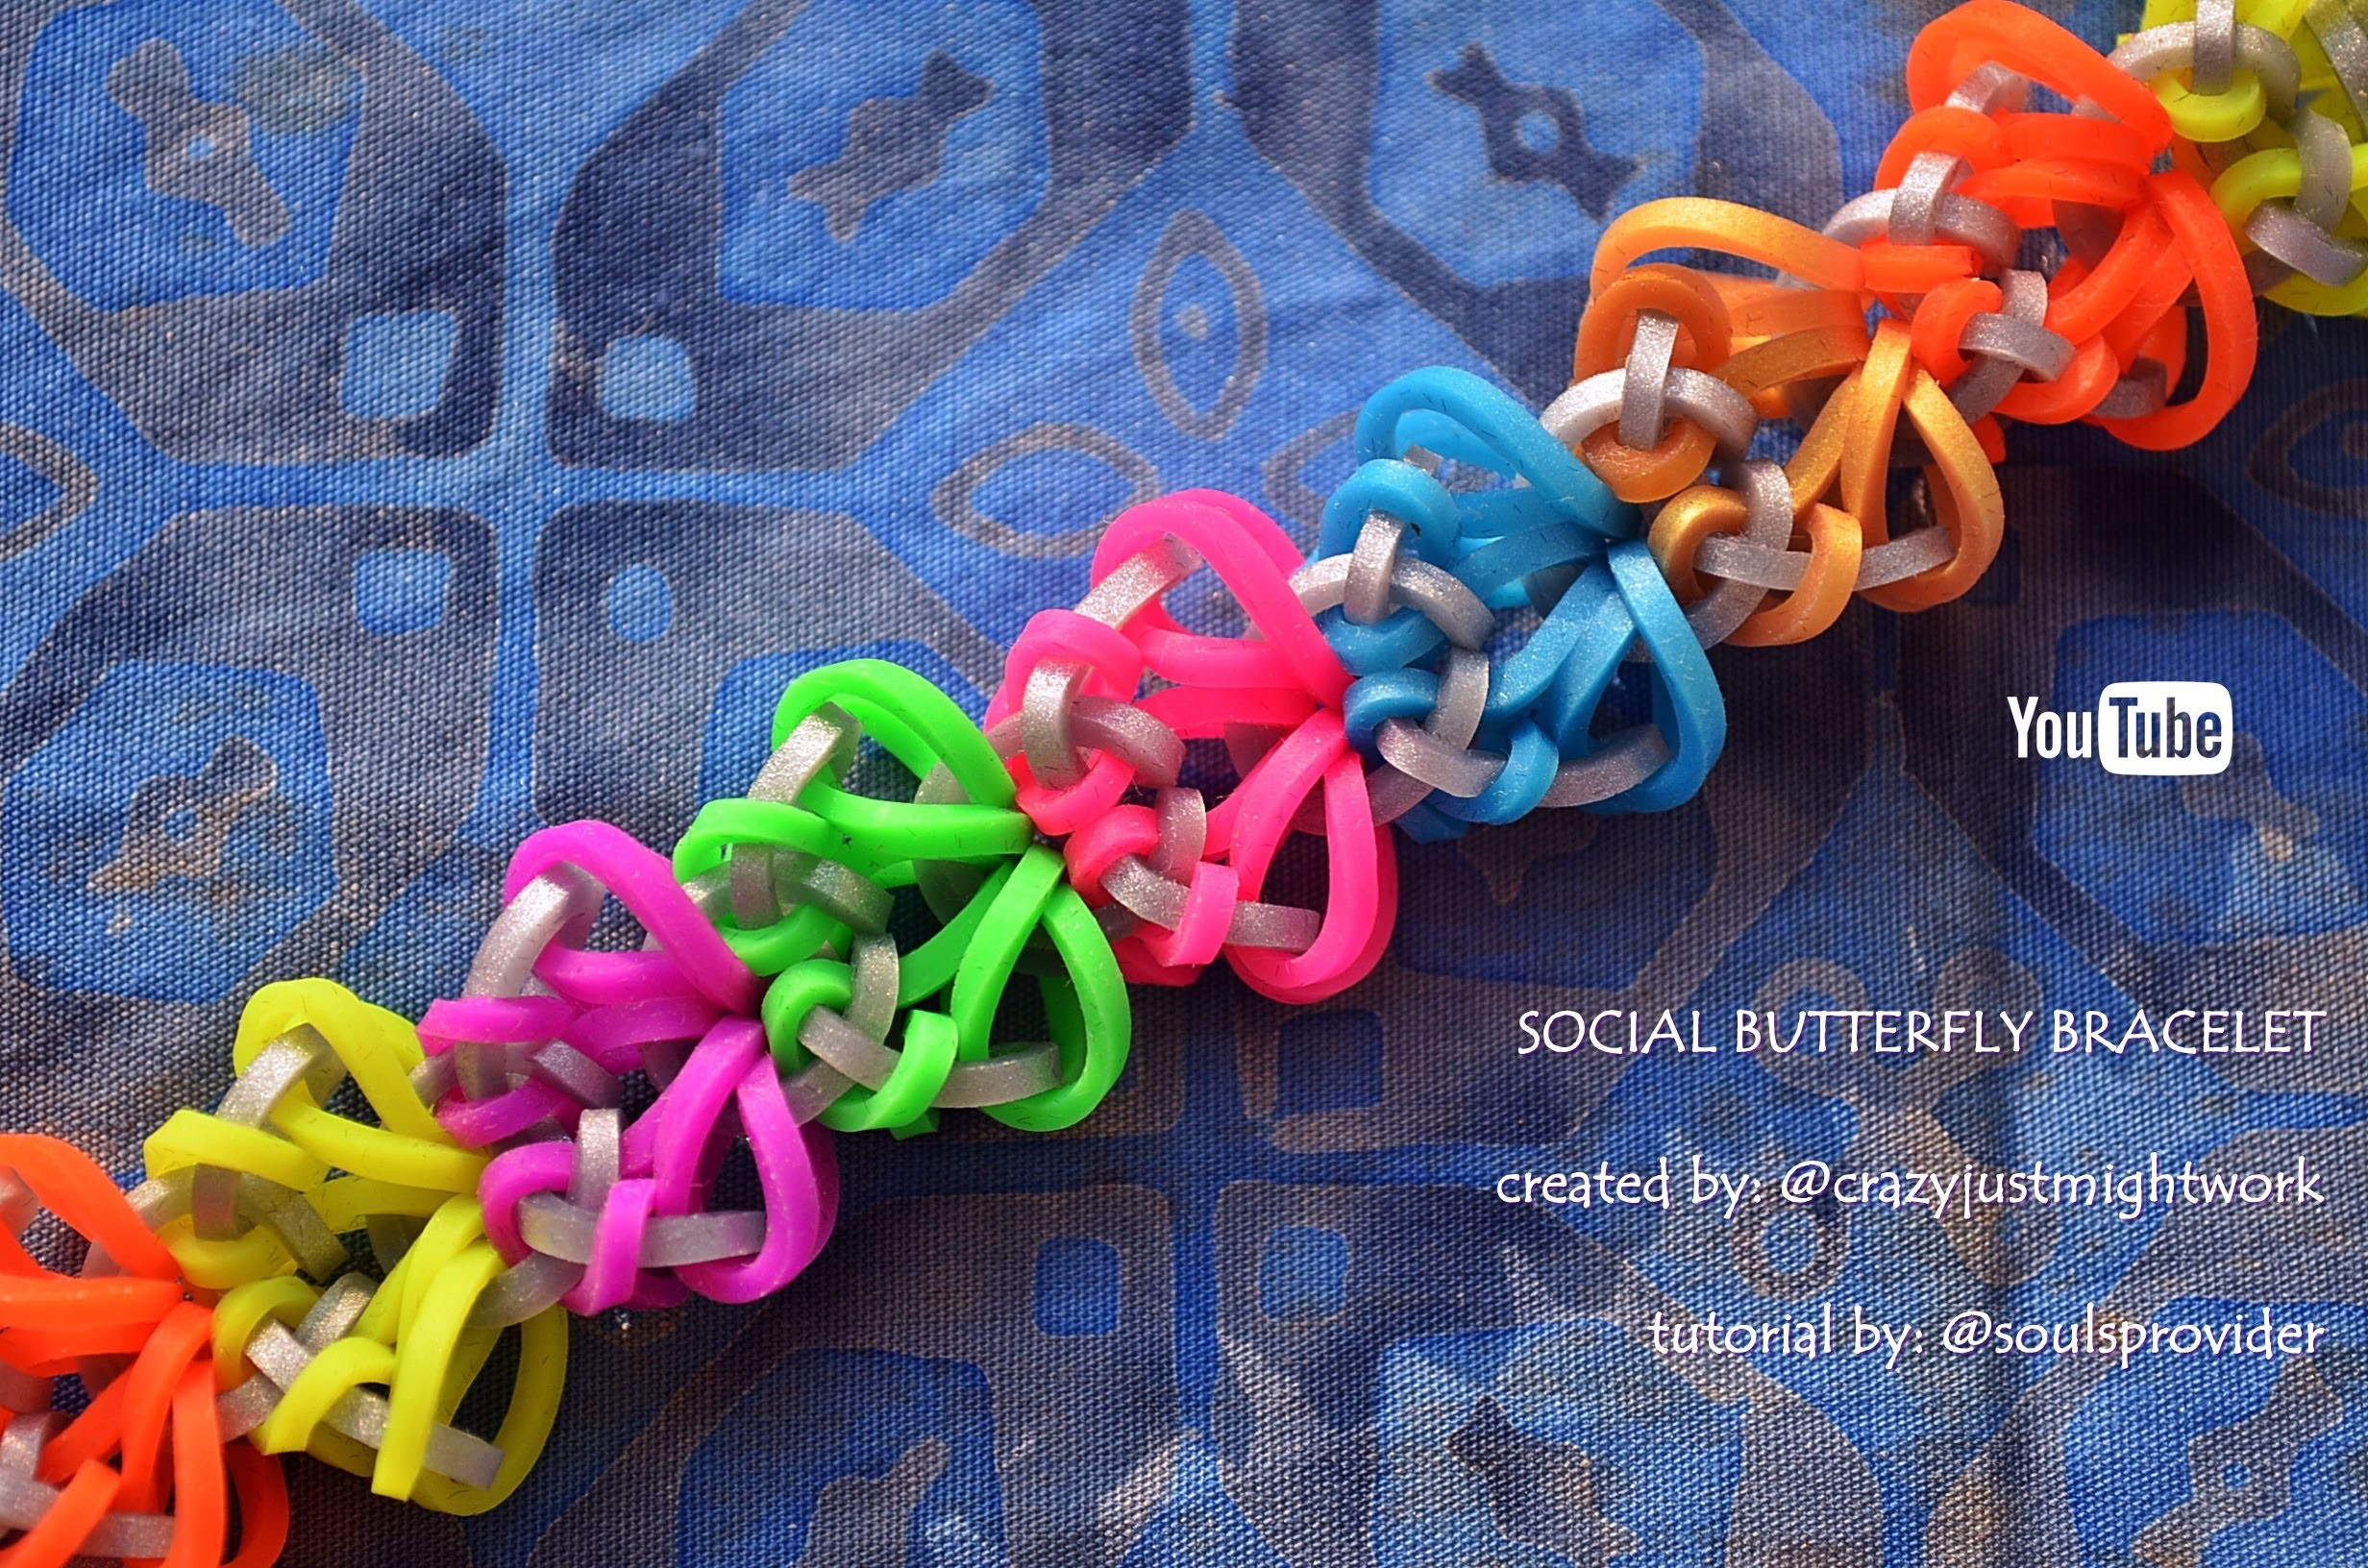 SOCIAL BUTTERFLY BRACELET HOOK ONLY DESIGN TUTORIAL